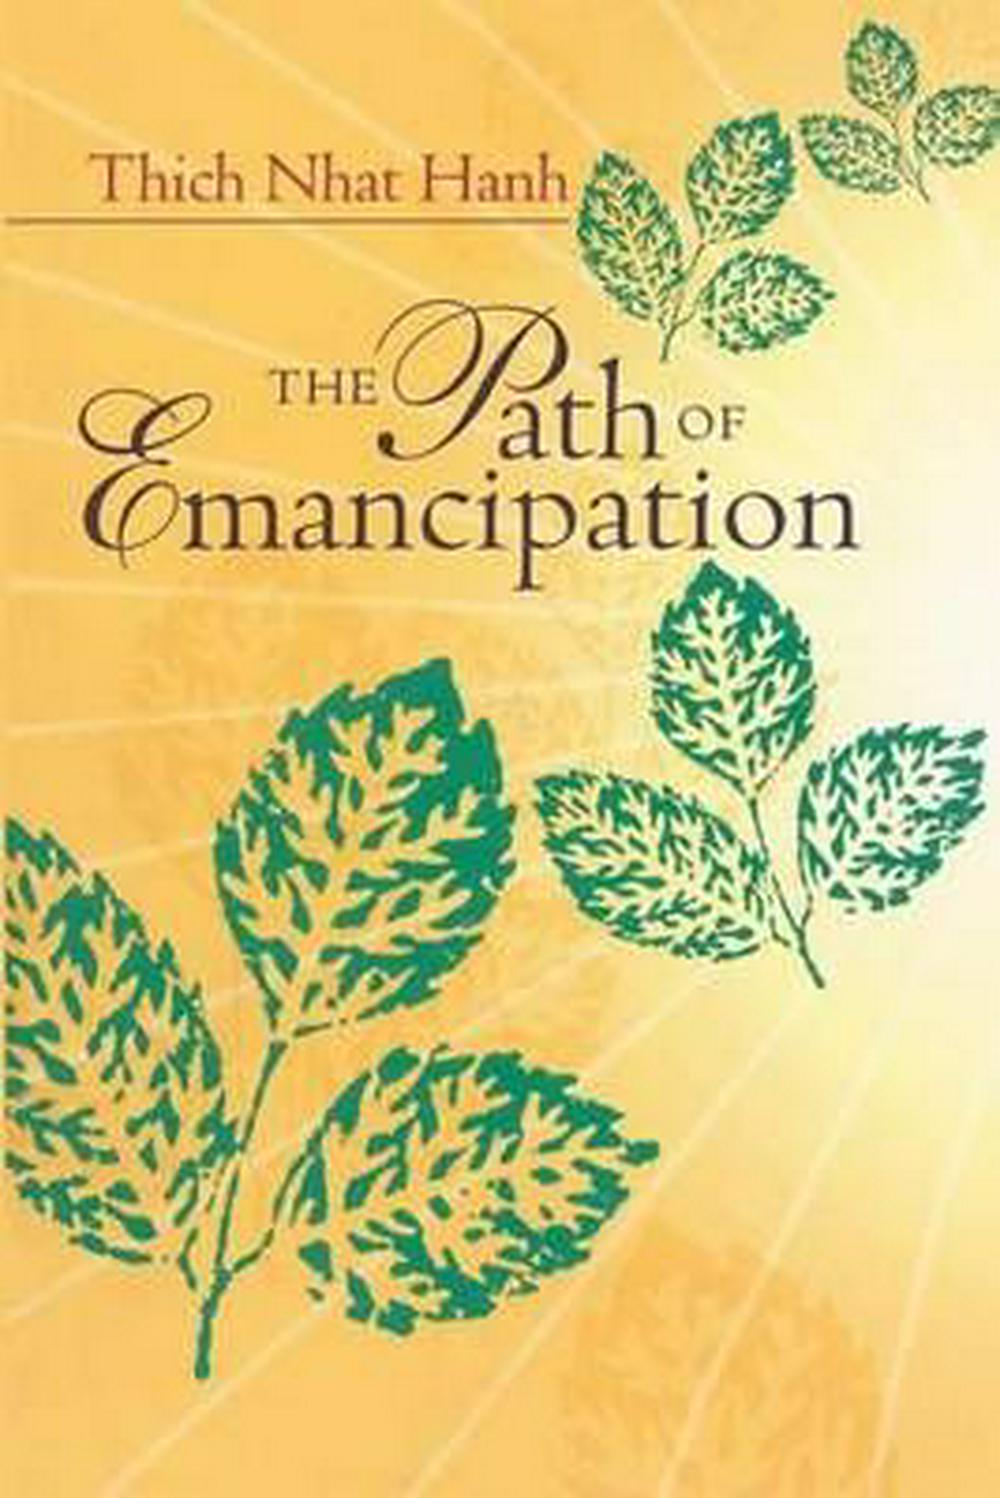 Path of Emancipation by Thich Nhat Hanh, ISBN: 9781888375152